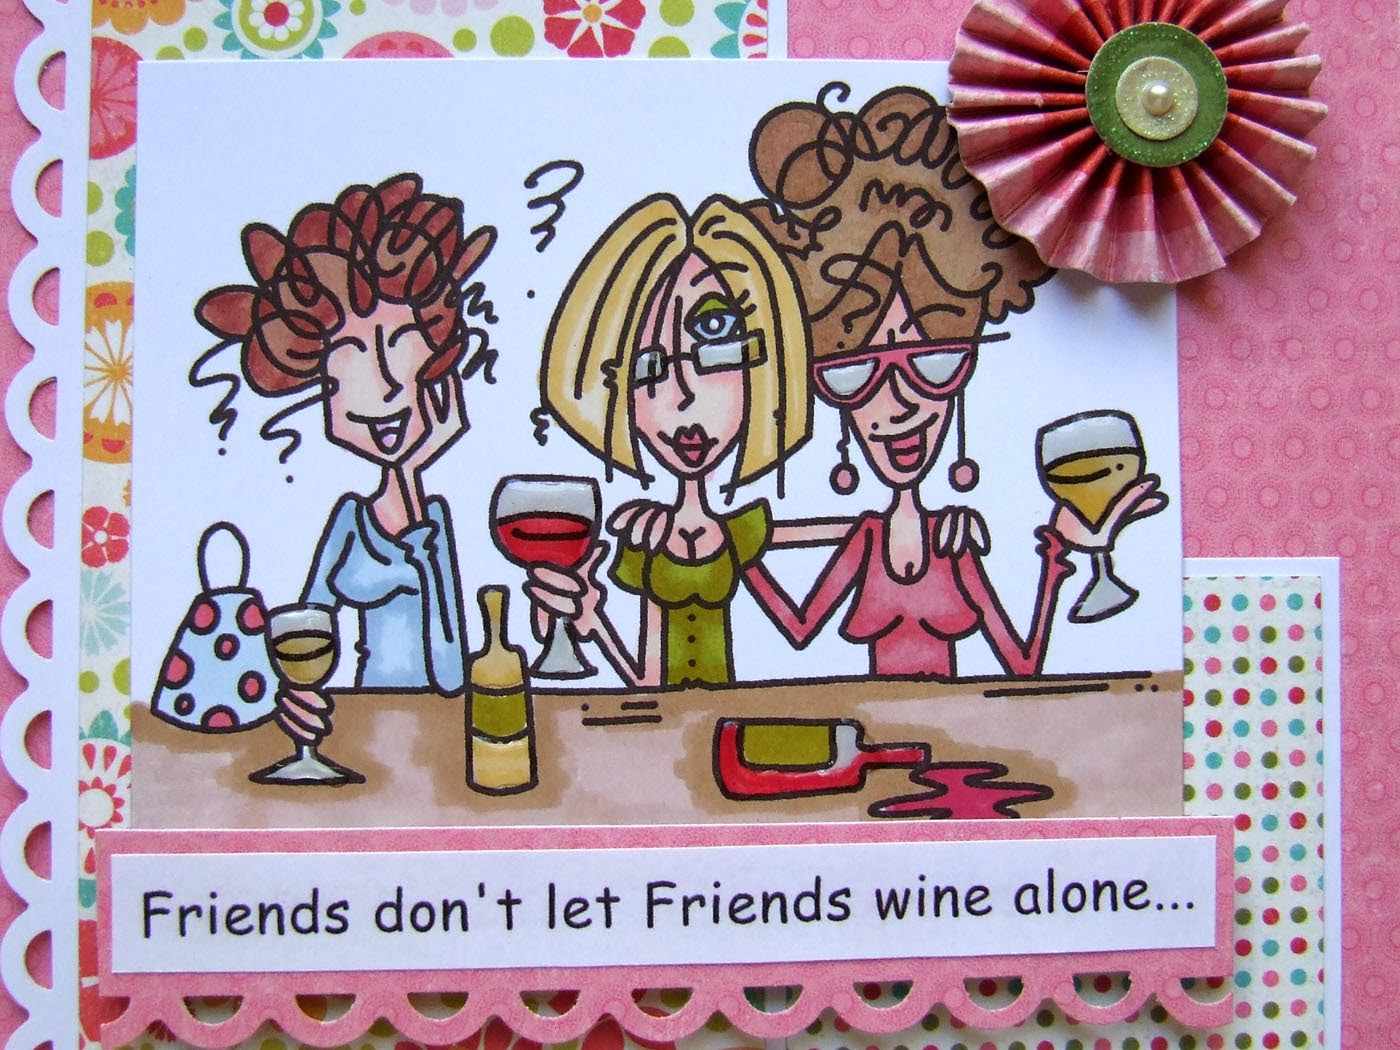 http://laughingducks2012.blogspot.co.uk/2014/01/friends-dont-let-friends-wine-alone.html